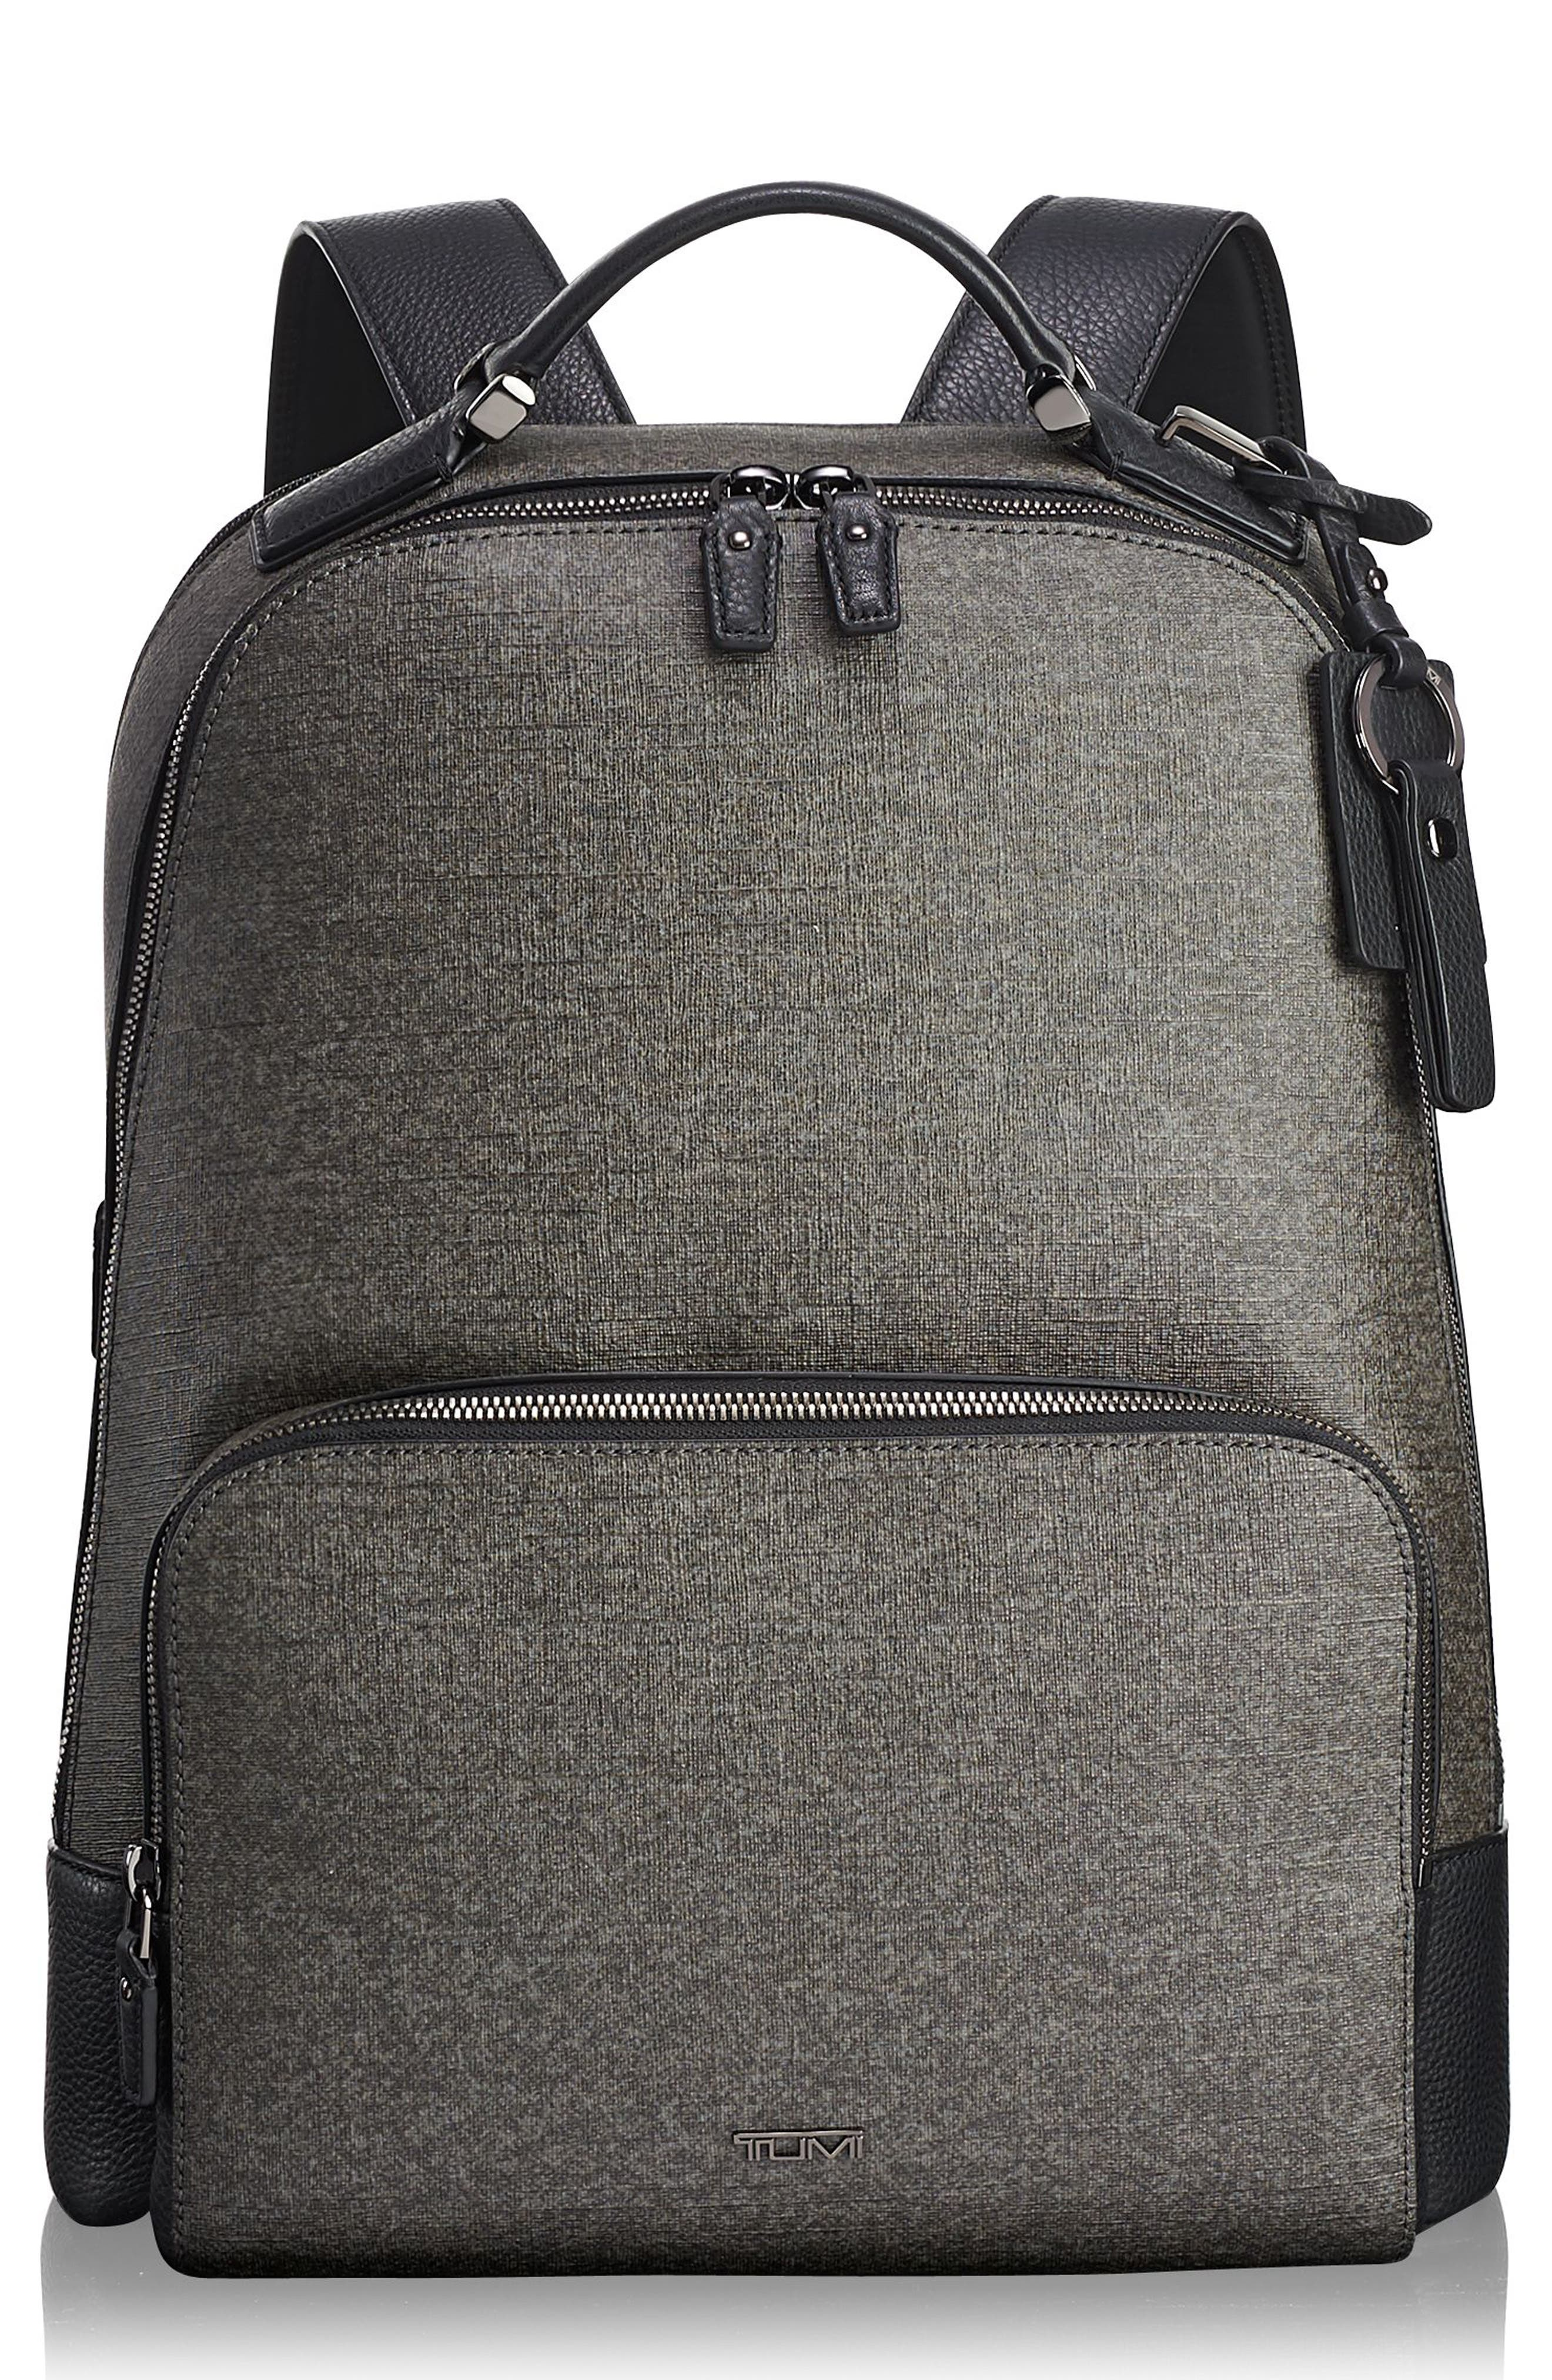 Stanton Gail Commuter Laptop Backpack,                             Main thumbnail 1, color,                             EARL GREY